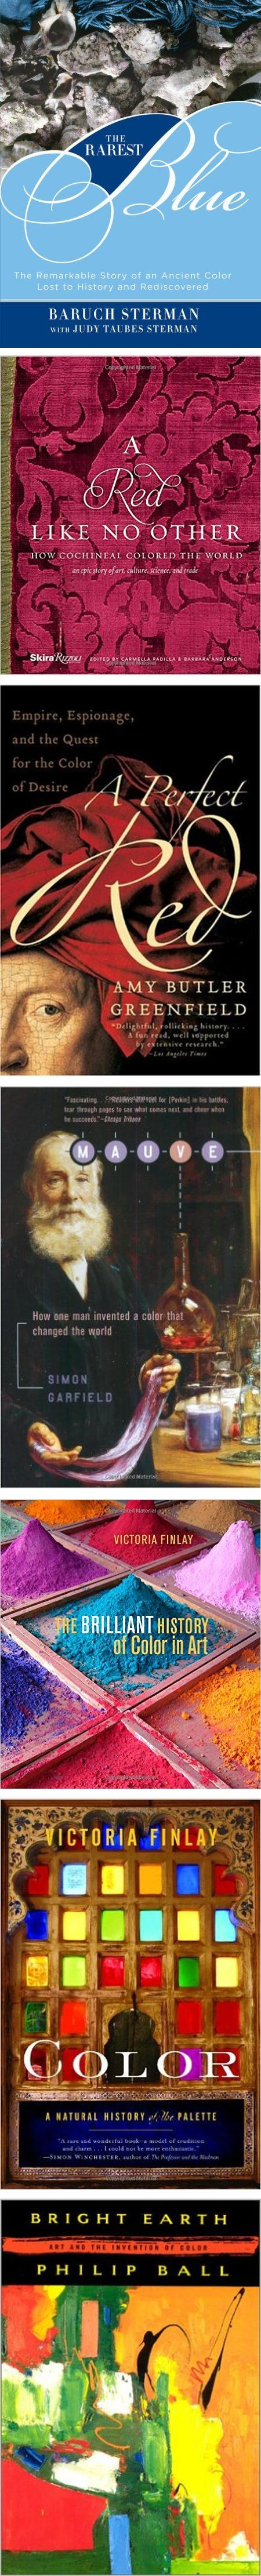 Books on the history of pigments and colors